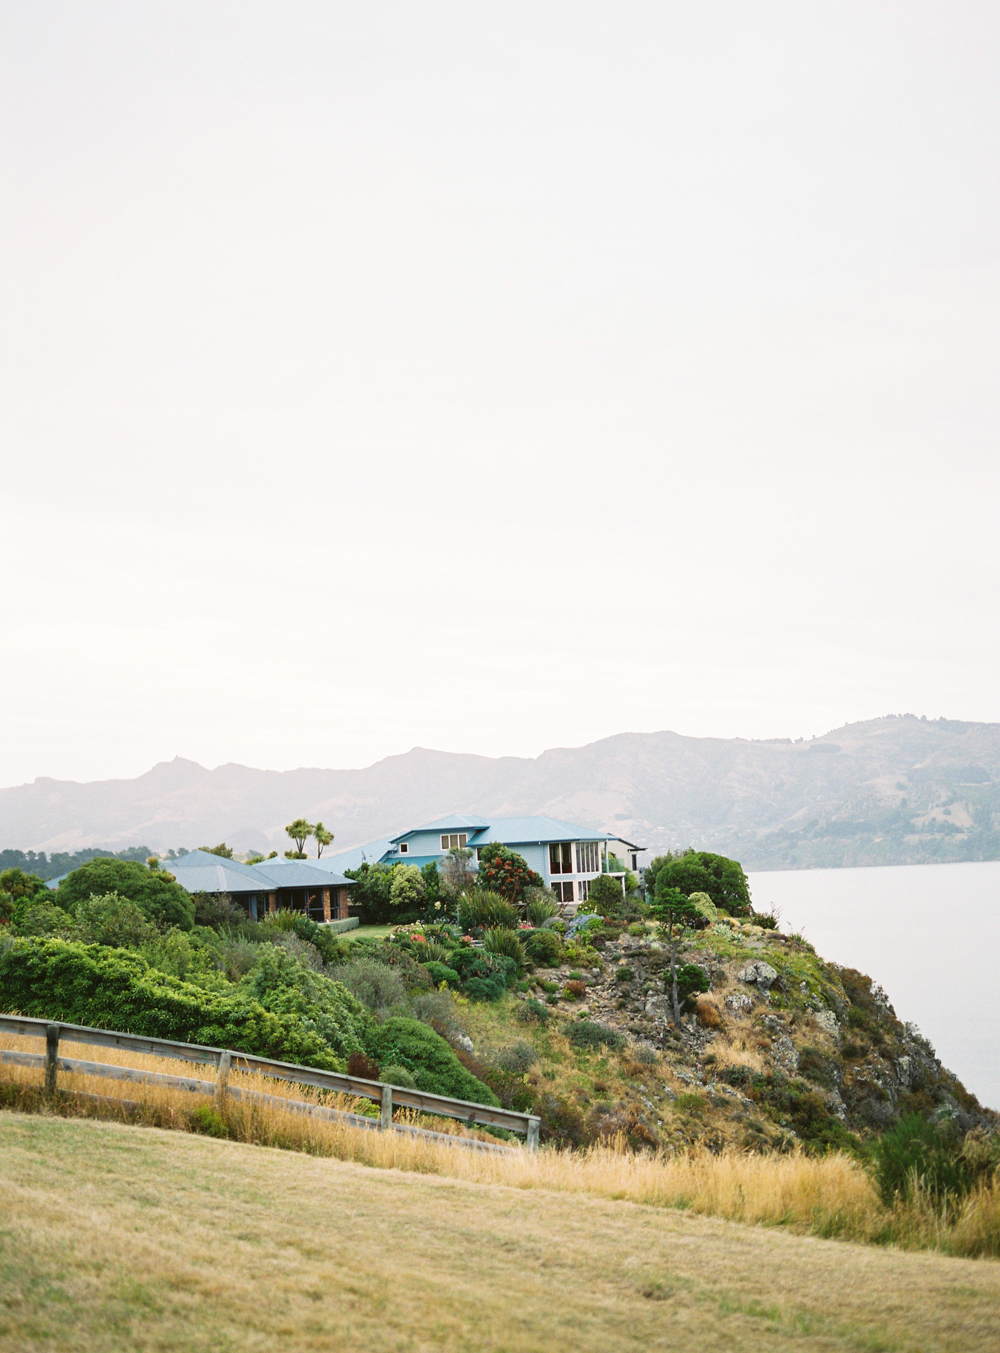 celine_chhuon_engagement_governor_bay_christchurch_newzealand_destination_photographer (5).jpg